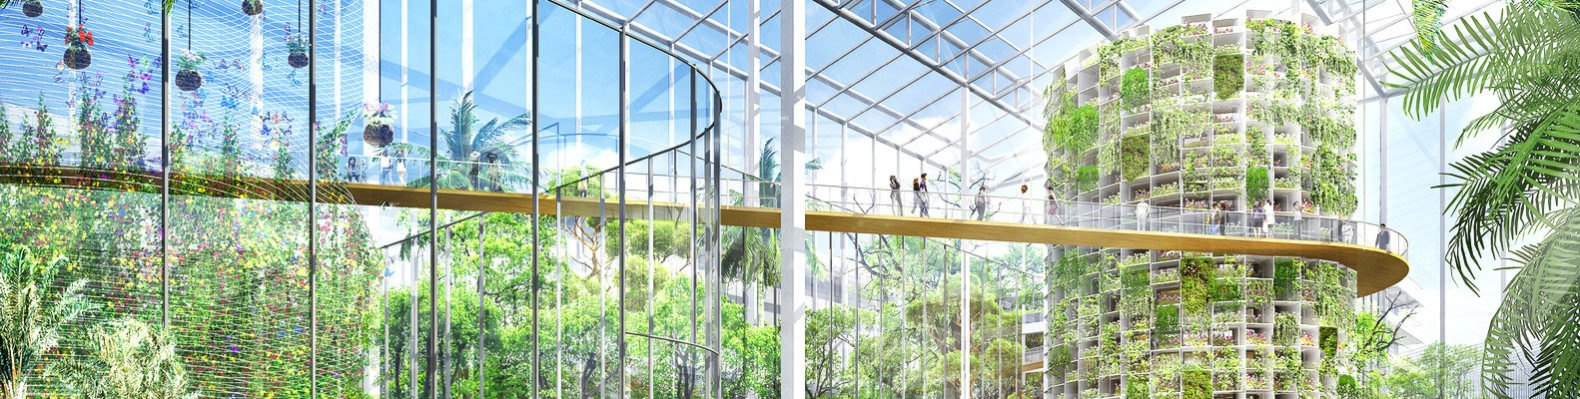 Shanghai Is Planning A Massive Hectare Vertical Farm To Feed